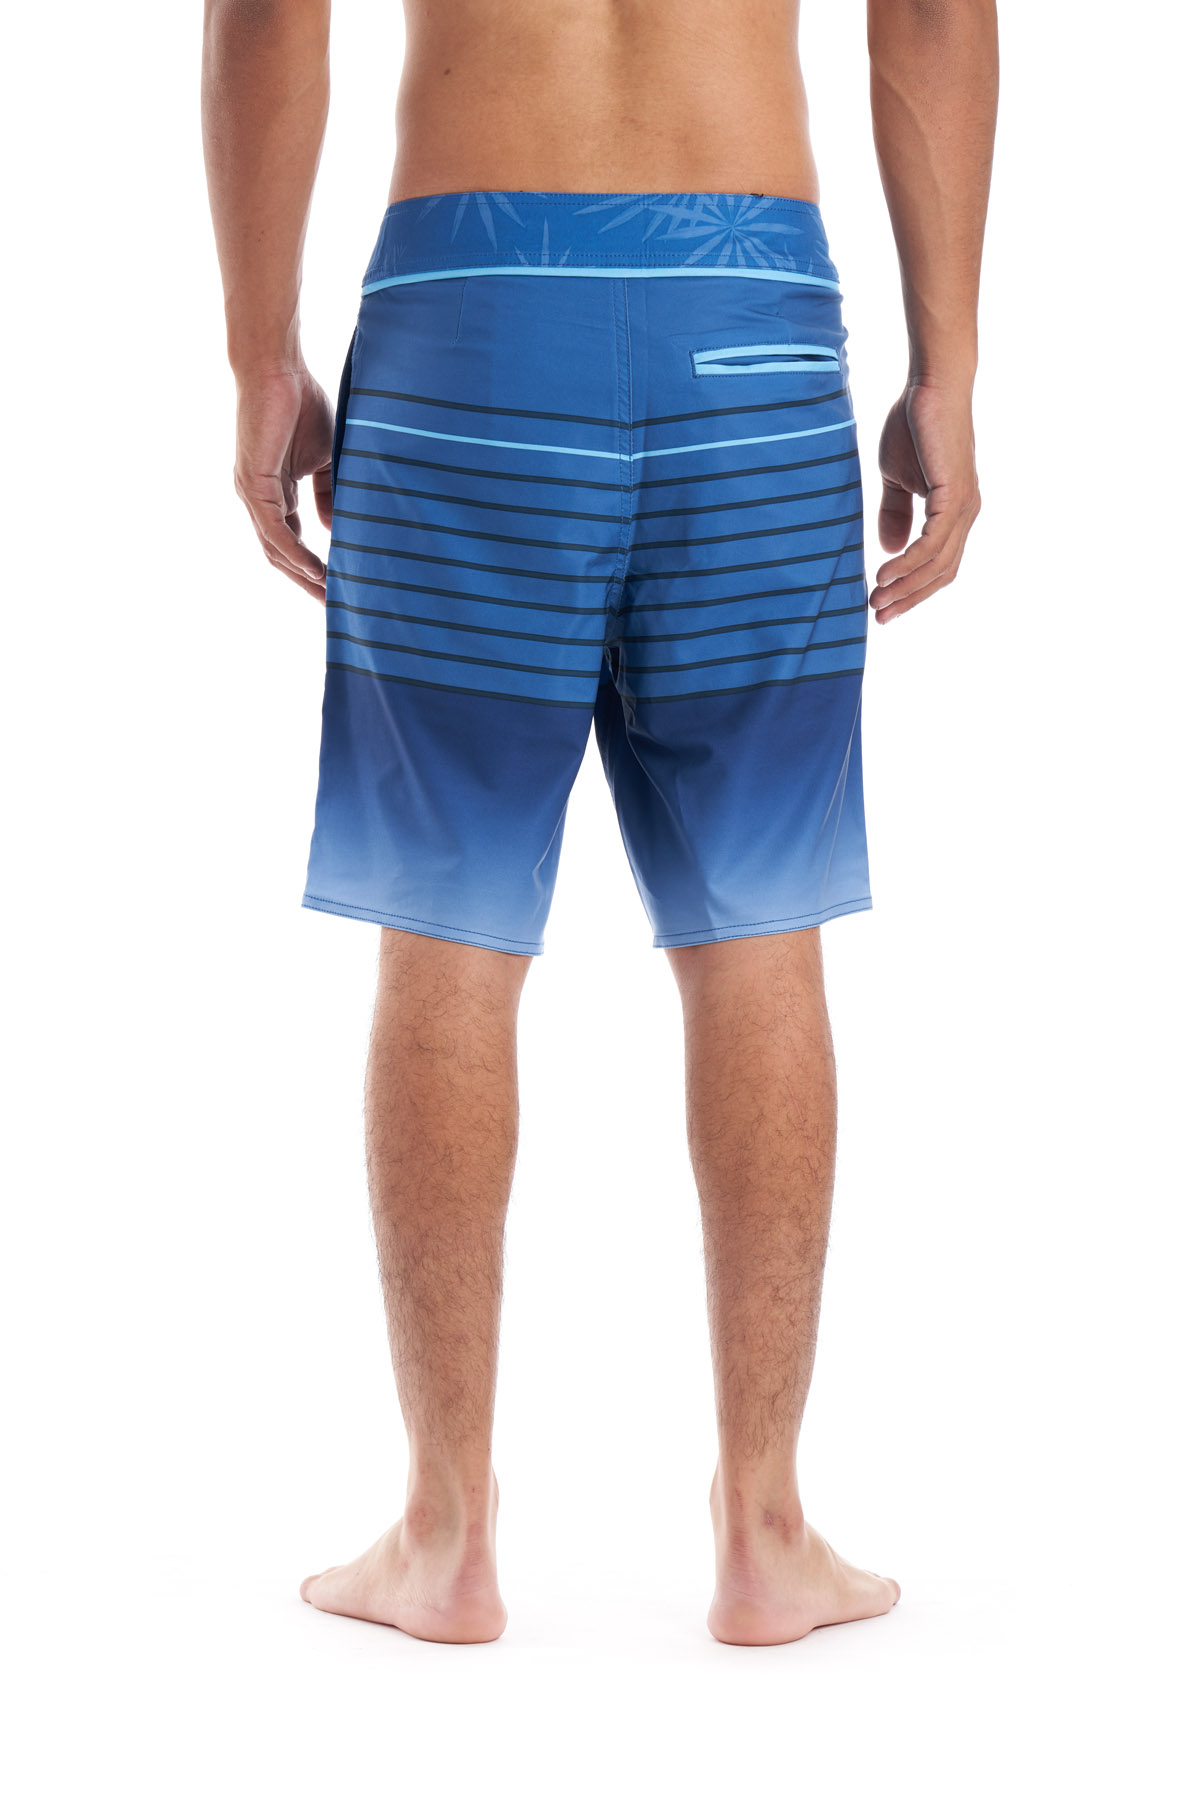 22ed0babc9 Alpine Swiss - Men's Swim Shorts Beach Trunks Surf Quick Dry Boardshorts  Swimwear - Walmart.com